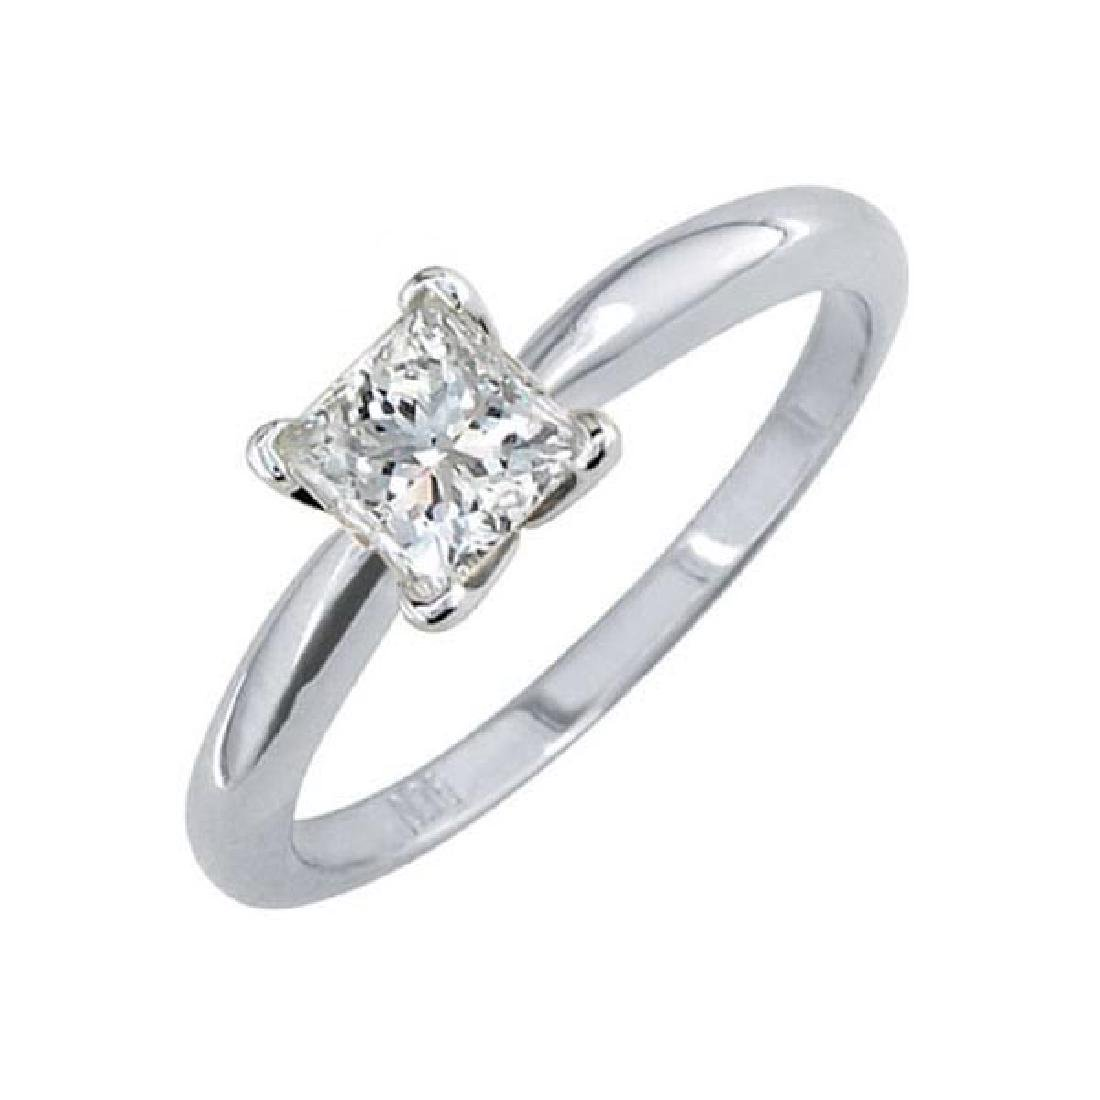 Certified 0.53 CTW Princess Diamond Solitaire 14k Ring